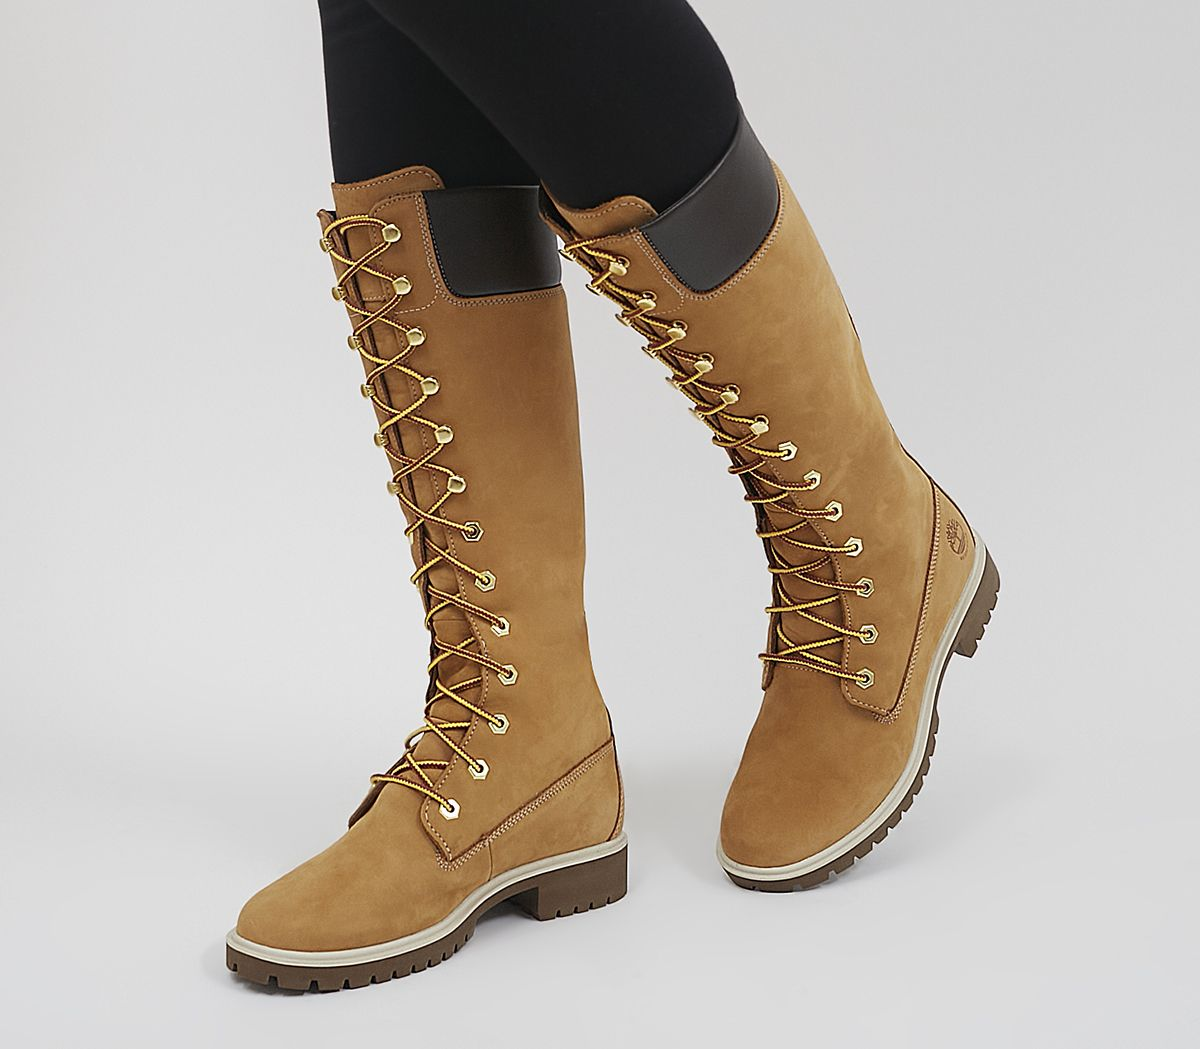 67ea1ffbc Timberland 14 Inch Premium Boots Wheat - Knee Boots